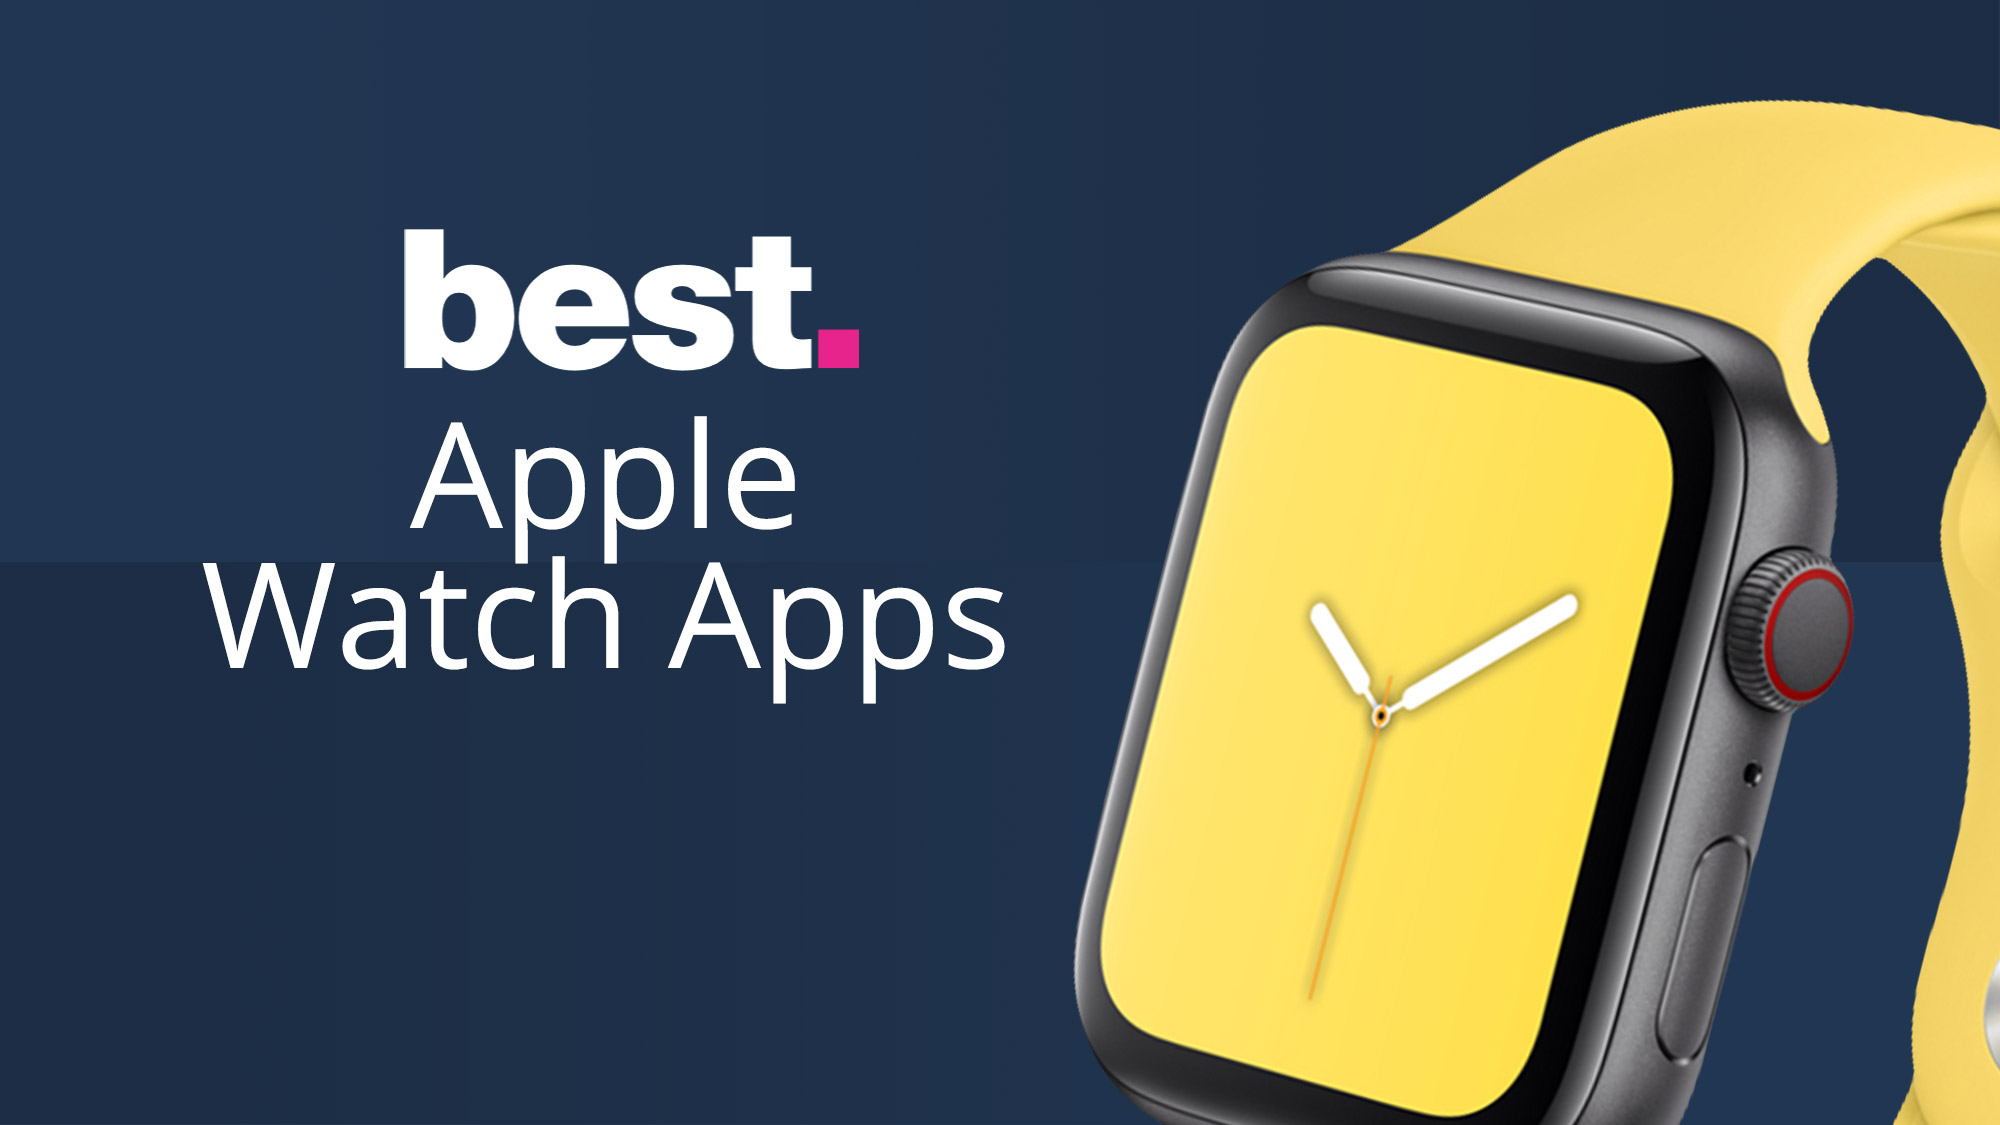 The best Apple Watch apps we've used in 2019